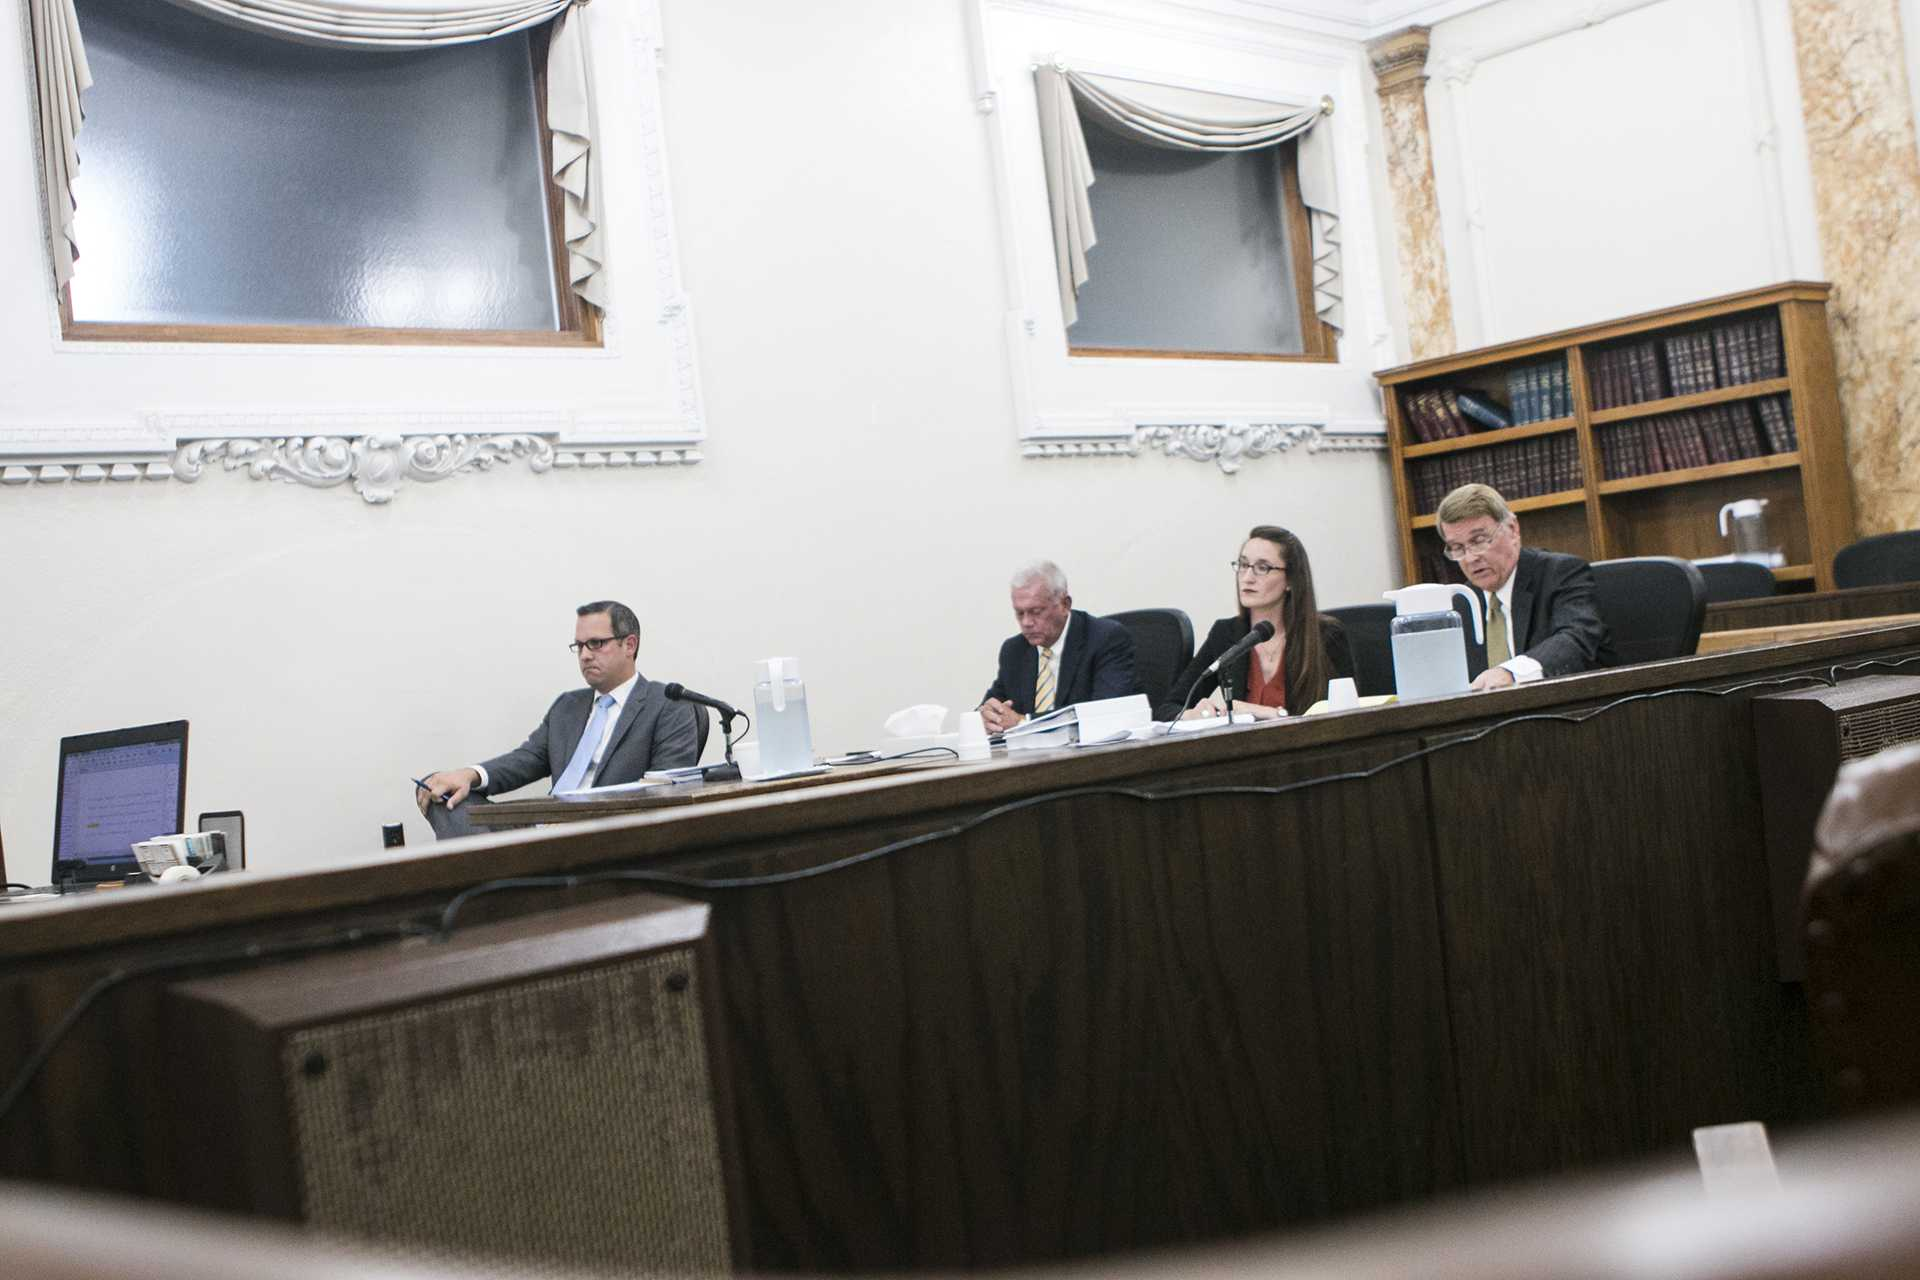 Defendants' attorney Richard Sapp (right) speaks during a hearing in the Polk County courthouse in Des Moines on Friday, Oct. 6, 2017. The plaintiff, former UI employee Gerhild Krapf, filed the civil suit in May 2016, alleging the regents violated Iowa Open Meetings Law by meeting privately with UI President Bruce Harreld in July 2015 prior to his hiring. (Joseph Cress/The Daily Iowan)